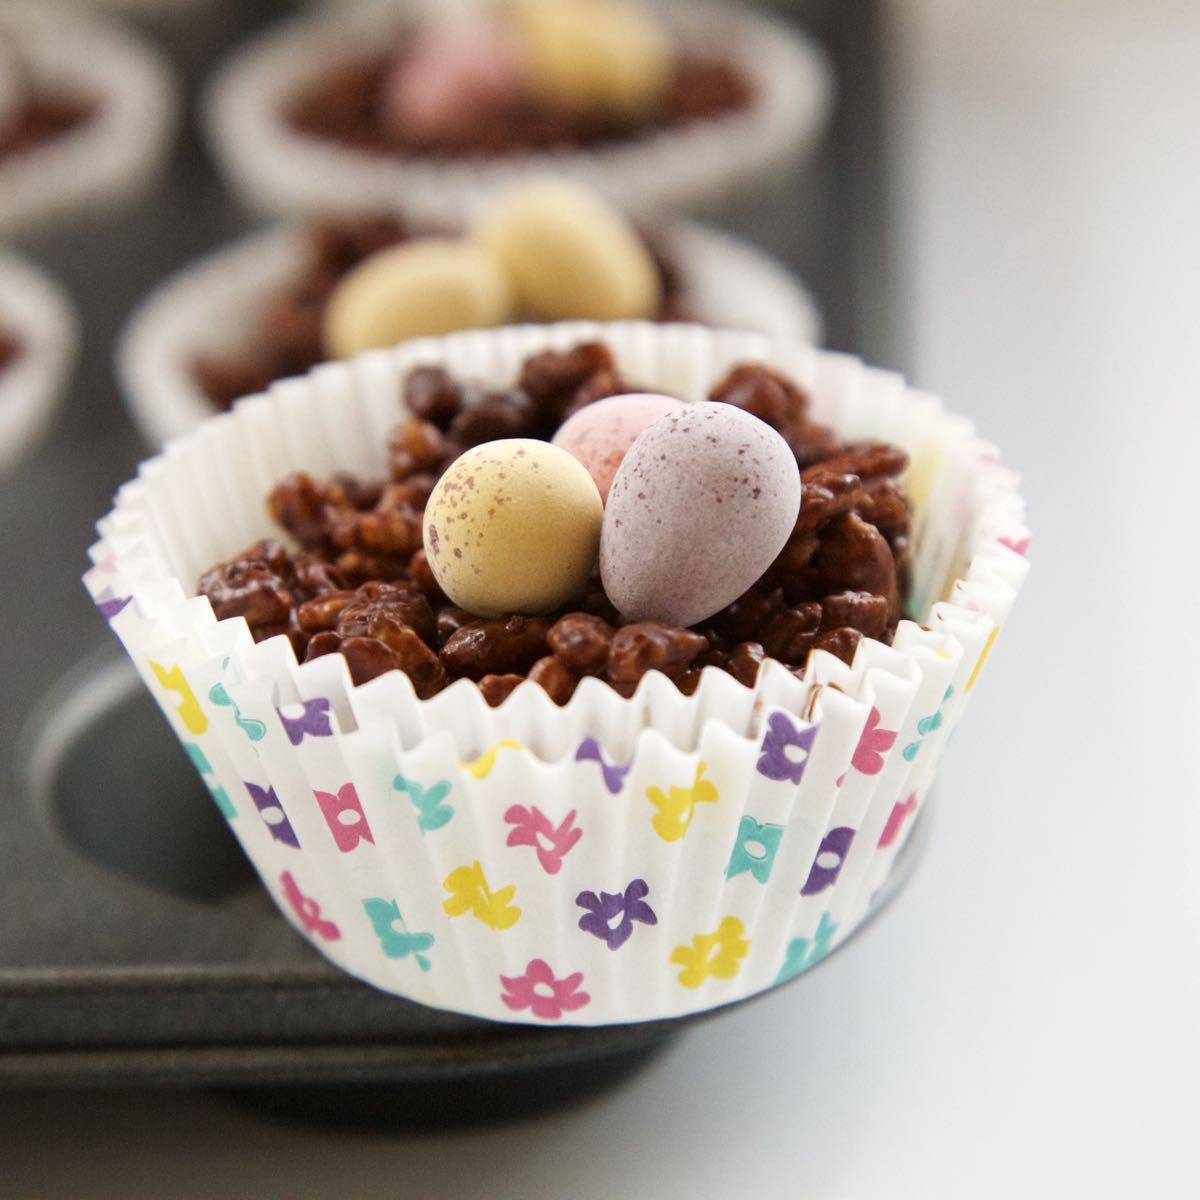 Chocolate Rice Krispie Cake in a pretty spring muffin case topped with chocolate mini eggs.